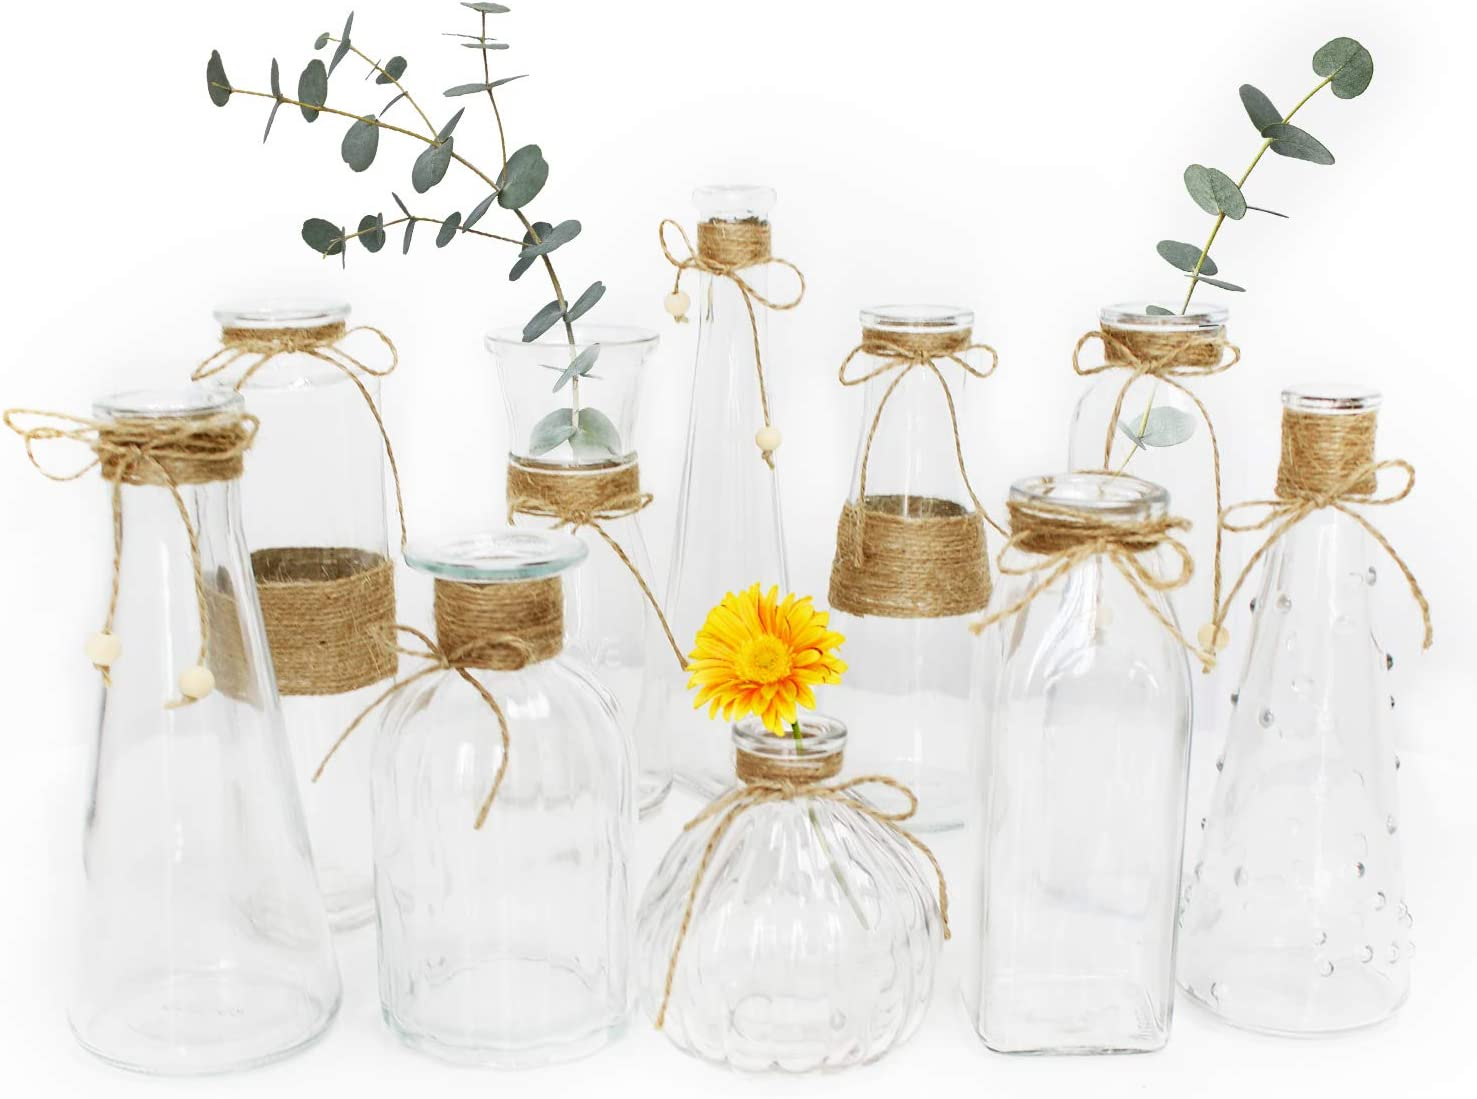 Unistyle Glass Vases Set of 10, Clear Glass Flower Vase with Rope Design and Differing Unique Shapes for Home Decoration